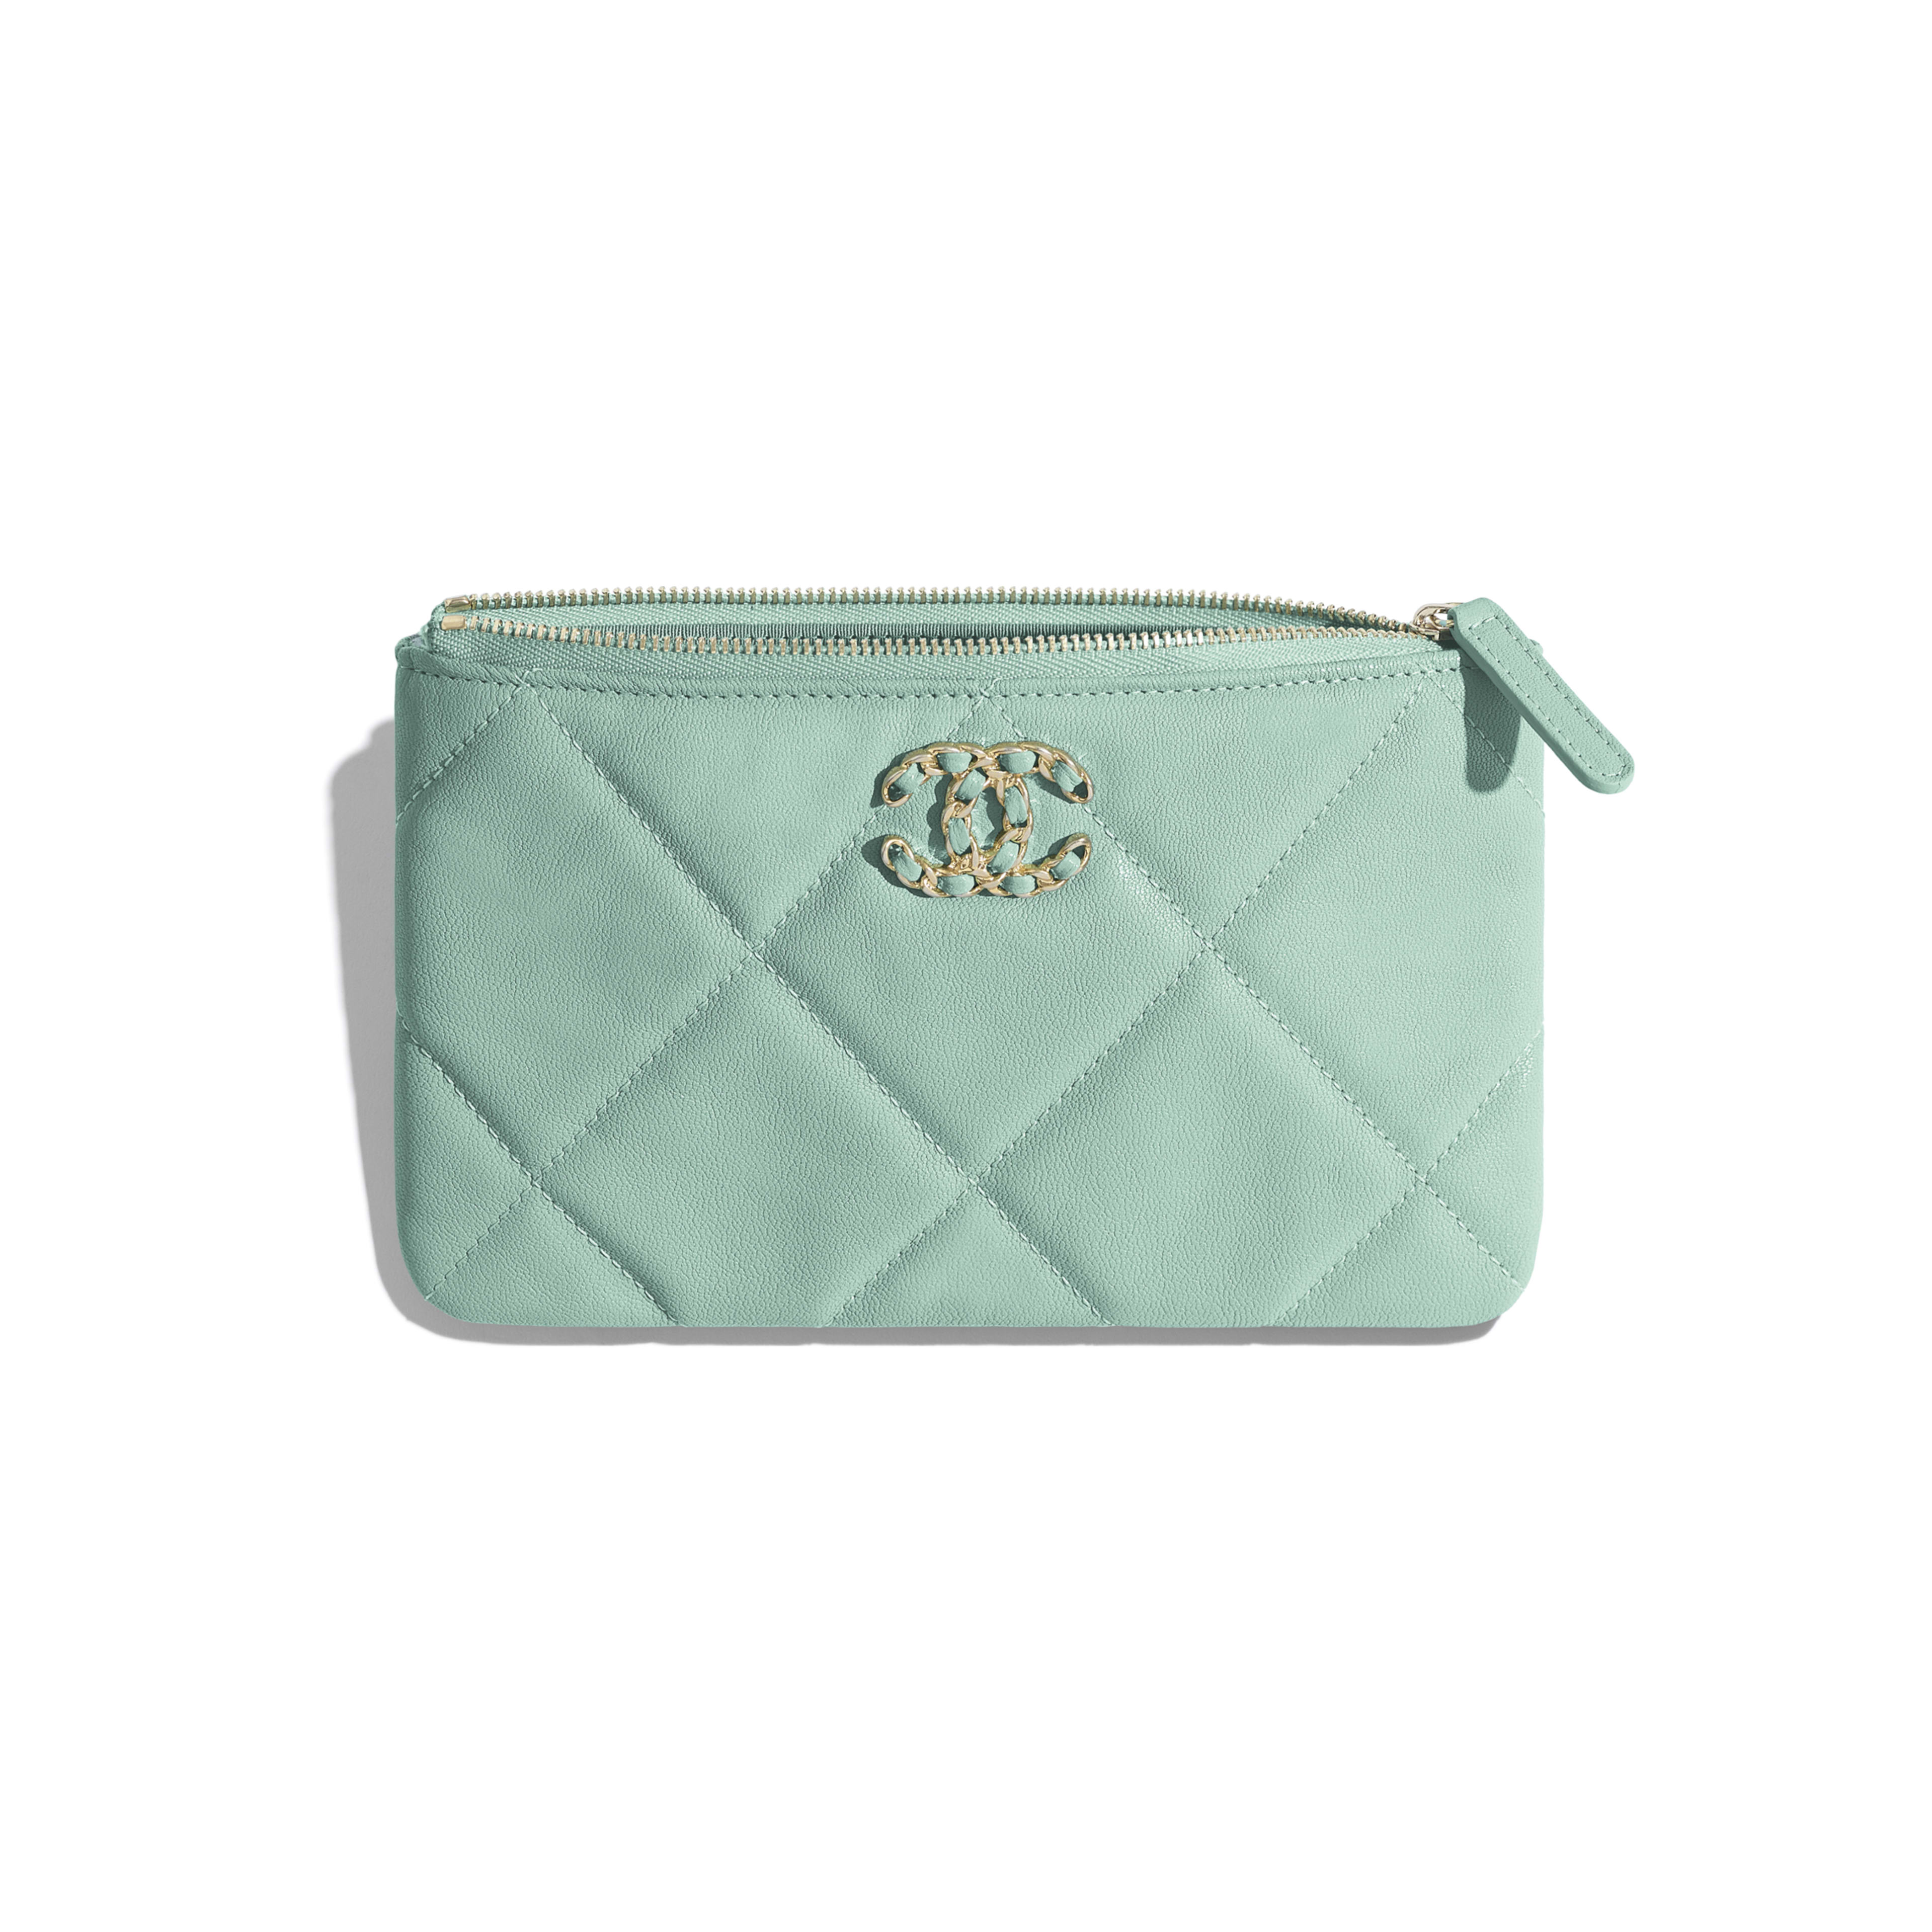 CHANEL 19 Small Pouch - Blue - Lambskin, Gold-Tone, Silver-Tone & Ruthenium-Finish Metal - Other view - see full sized version